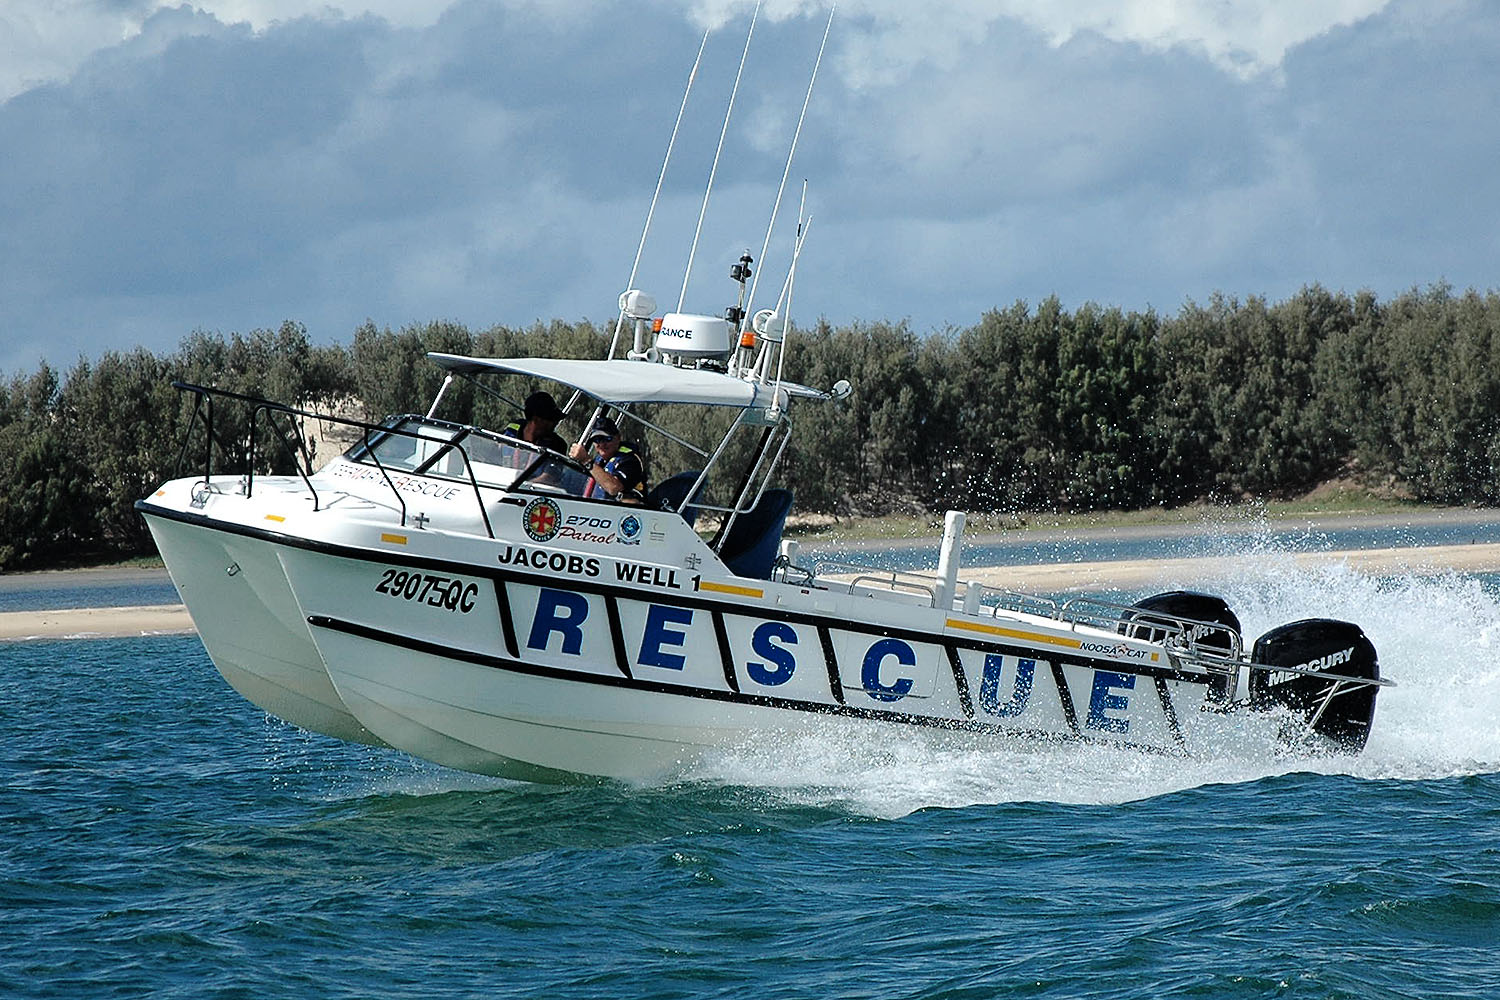 Volunteer Marine Rescue (VMR) Jacobs Well